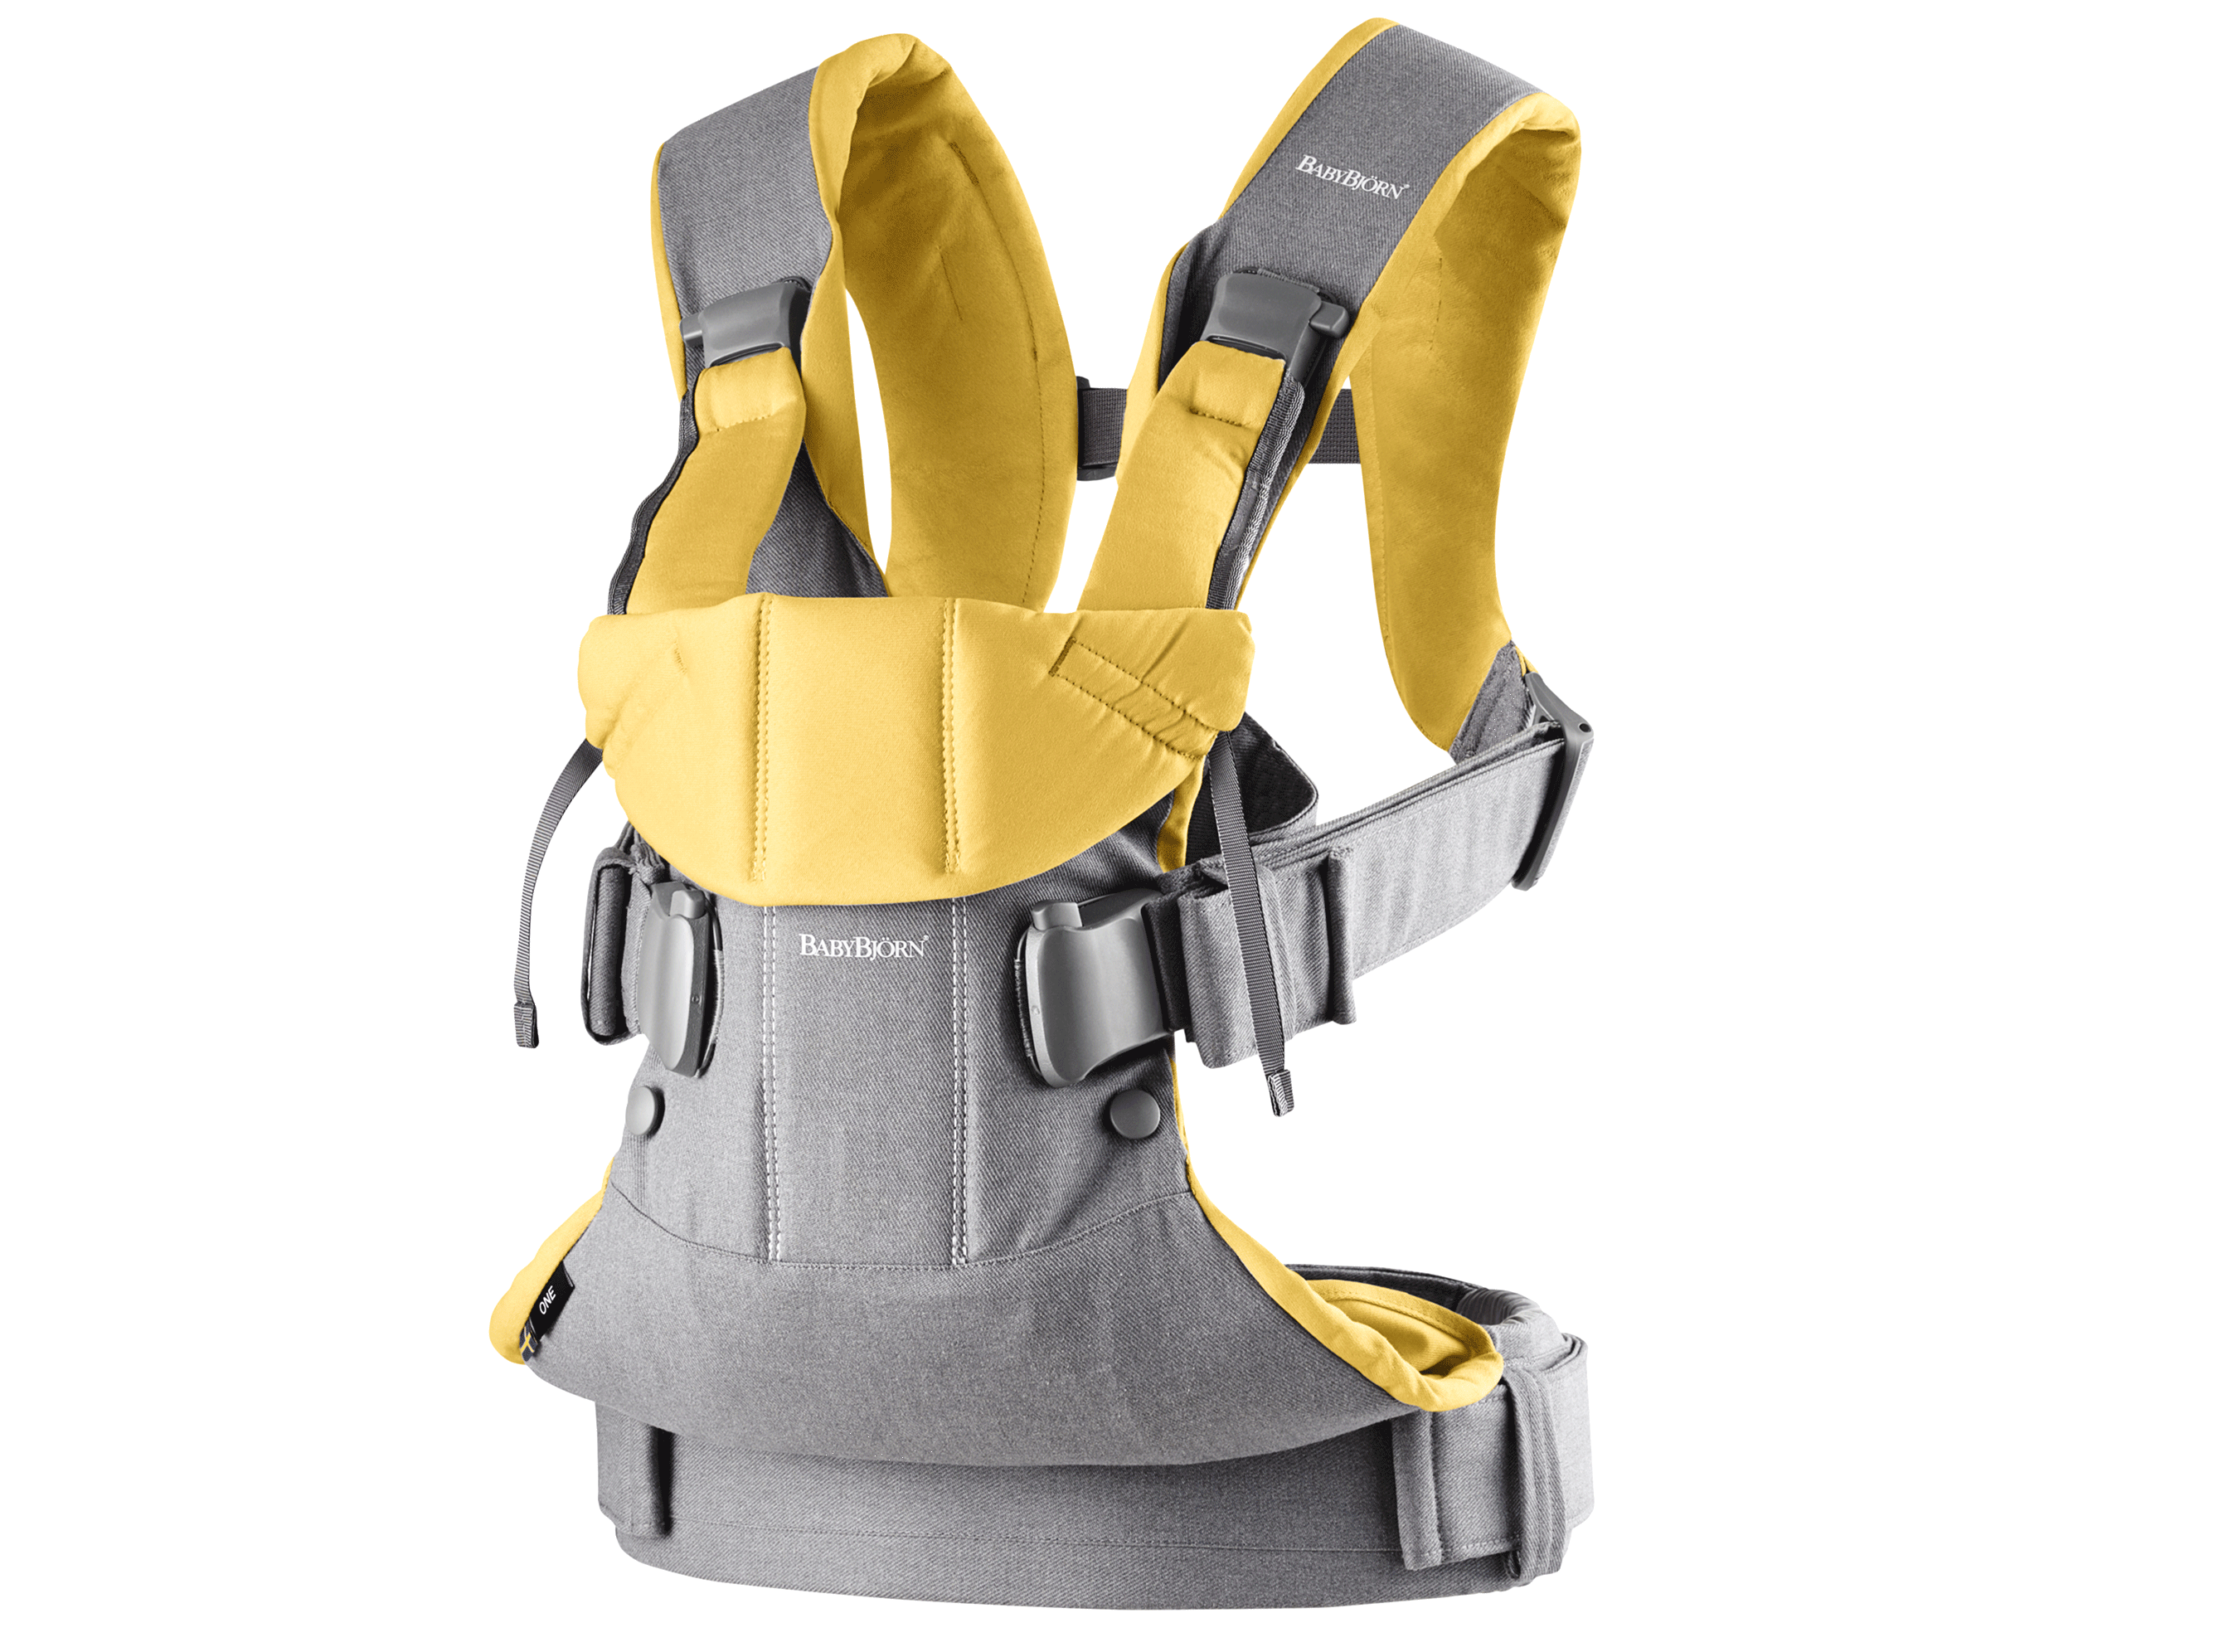 BABYBJÖRN Baby Carrier One, Gray/Yellow, Cotton Mix – Baby Power Collection